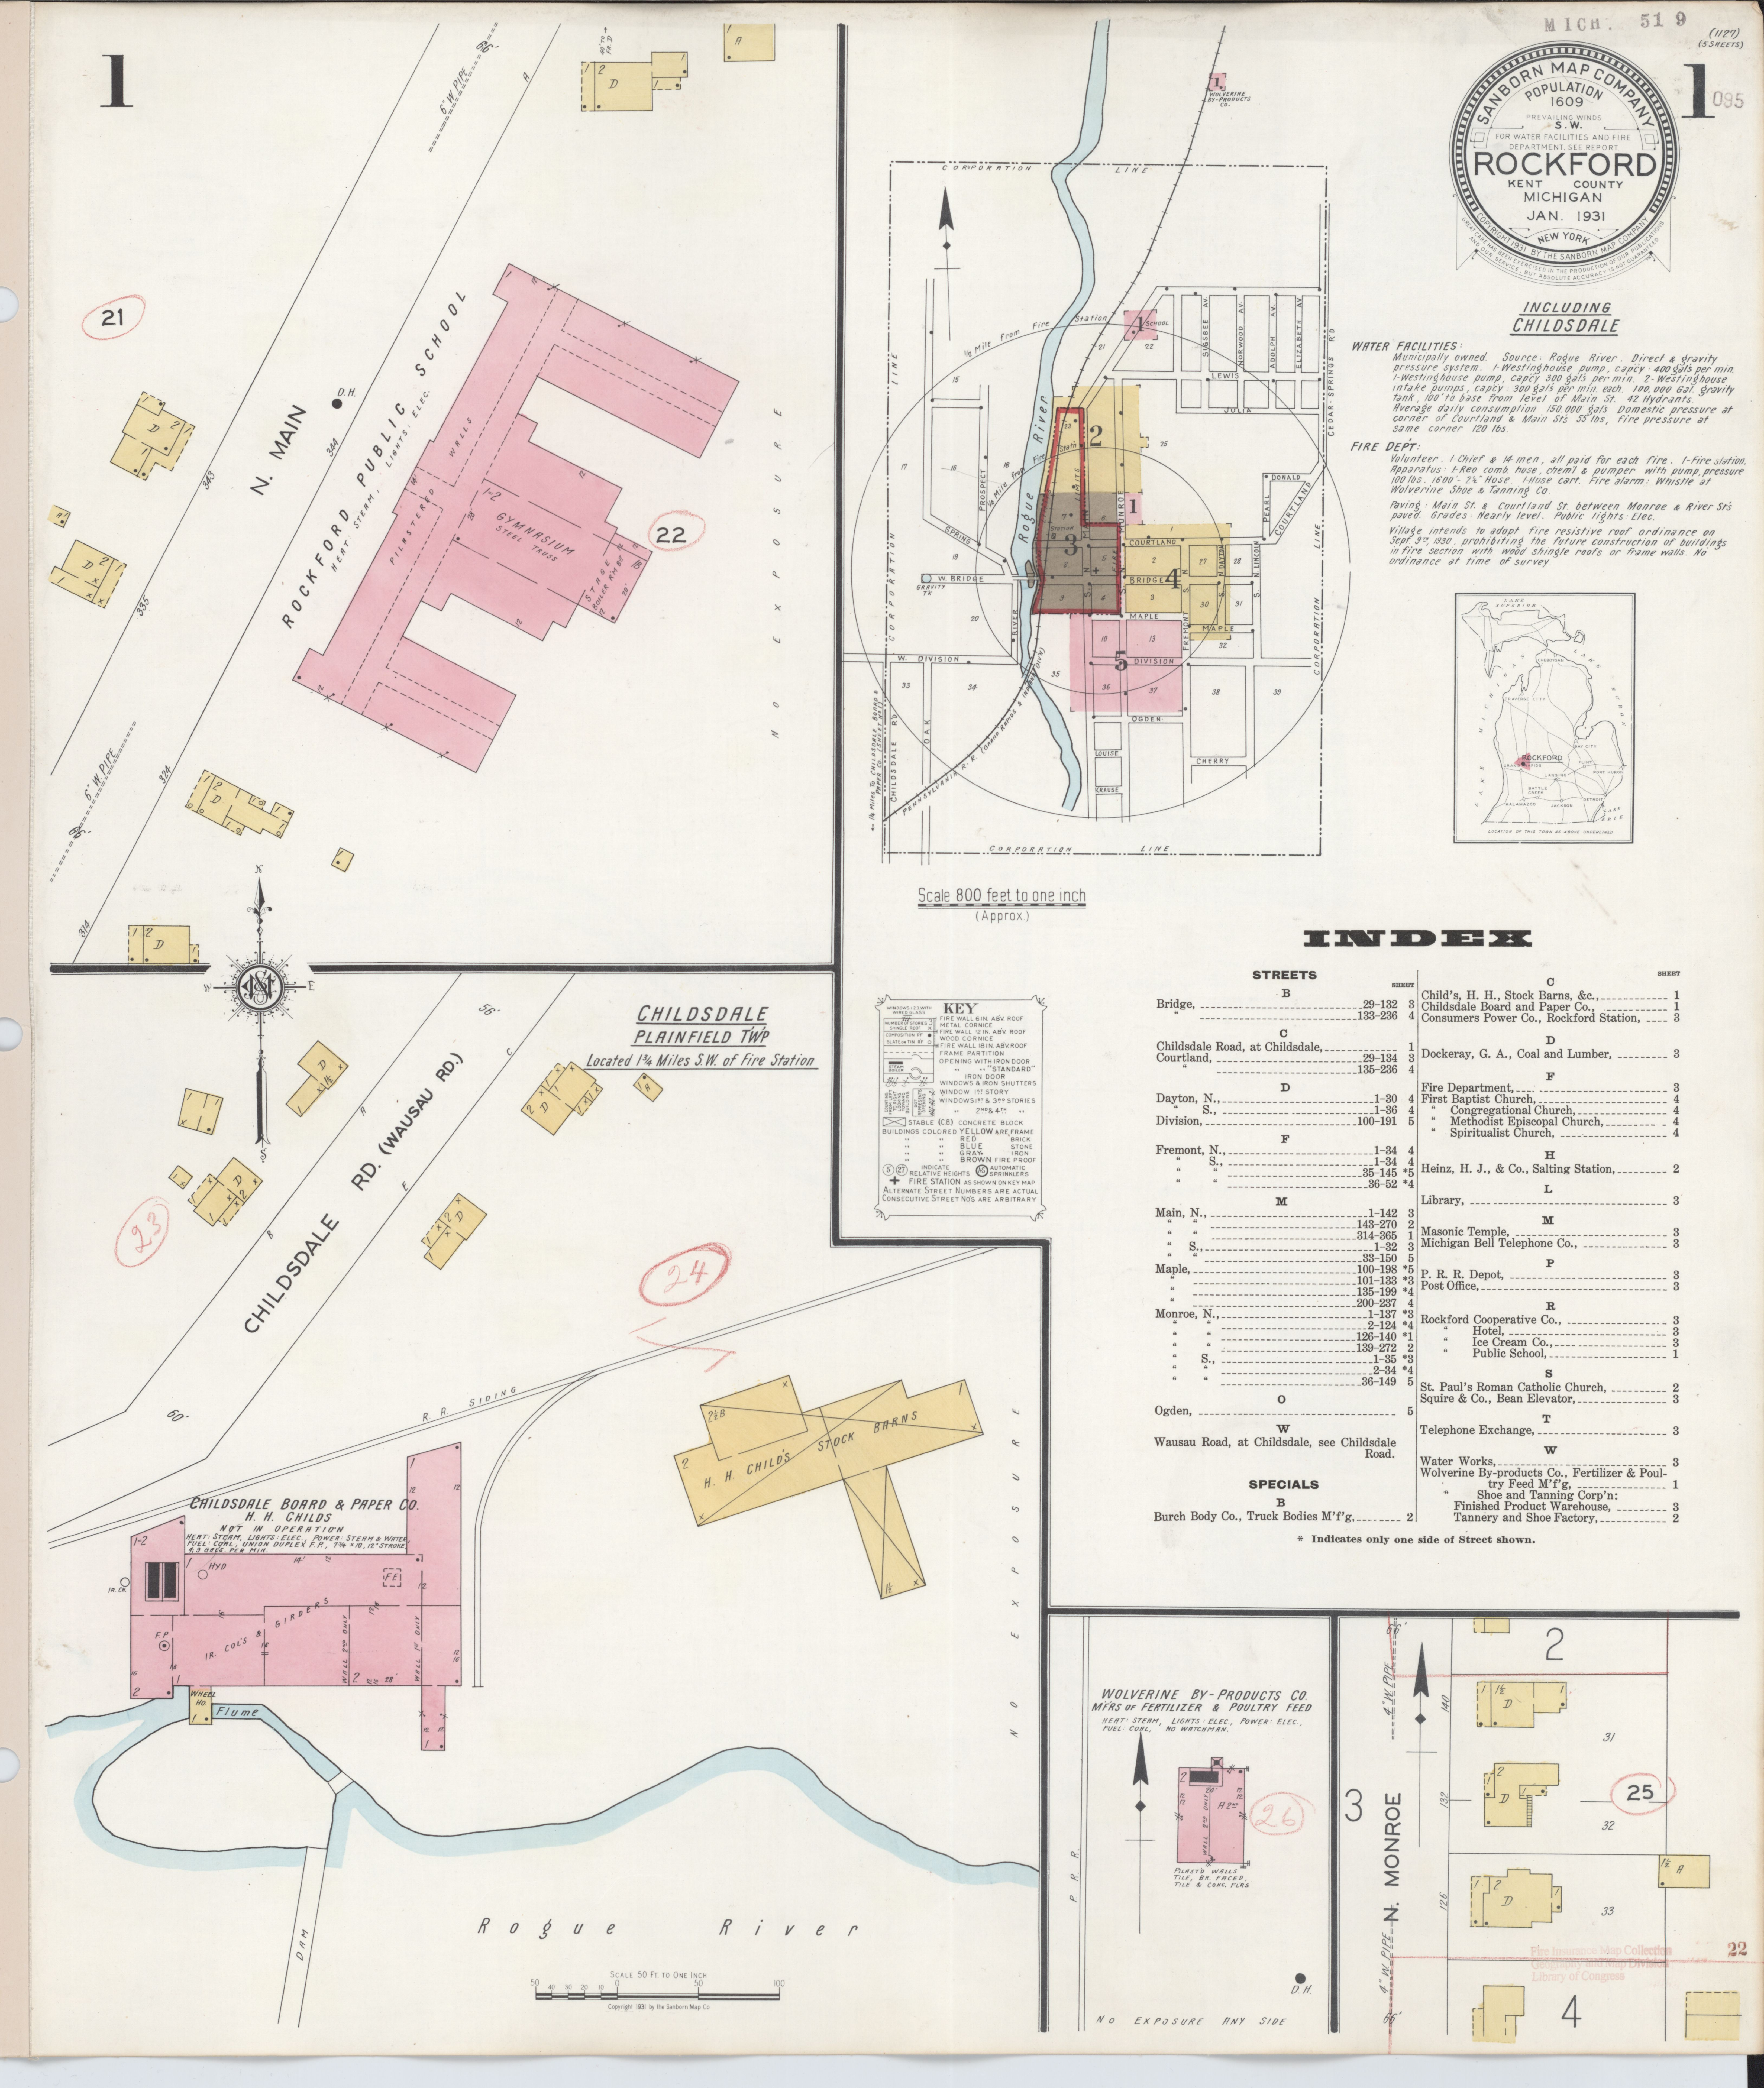 File:Sanborn Fire Insurance Map from Rockford, Kent County, Michigan on hastings street map, milford street map, kent delaware state map, city of flint street map, portage street map, dewey beach street map, galena street map, kent maryland map, narragansett street map, north providence street map, boyne city street map, kent wa map, city of lansing street map, st. clair shores street map, rockford street map, middletown street map, grant street map, springfield street map, kent washington street map, kent michigan,